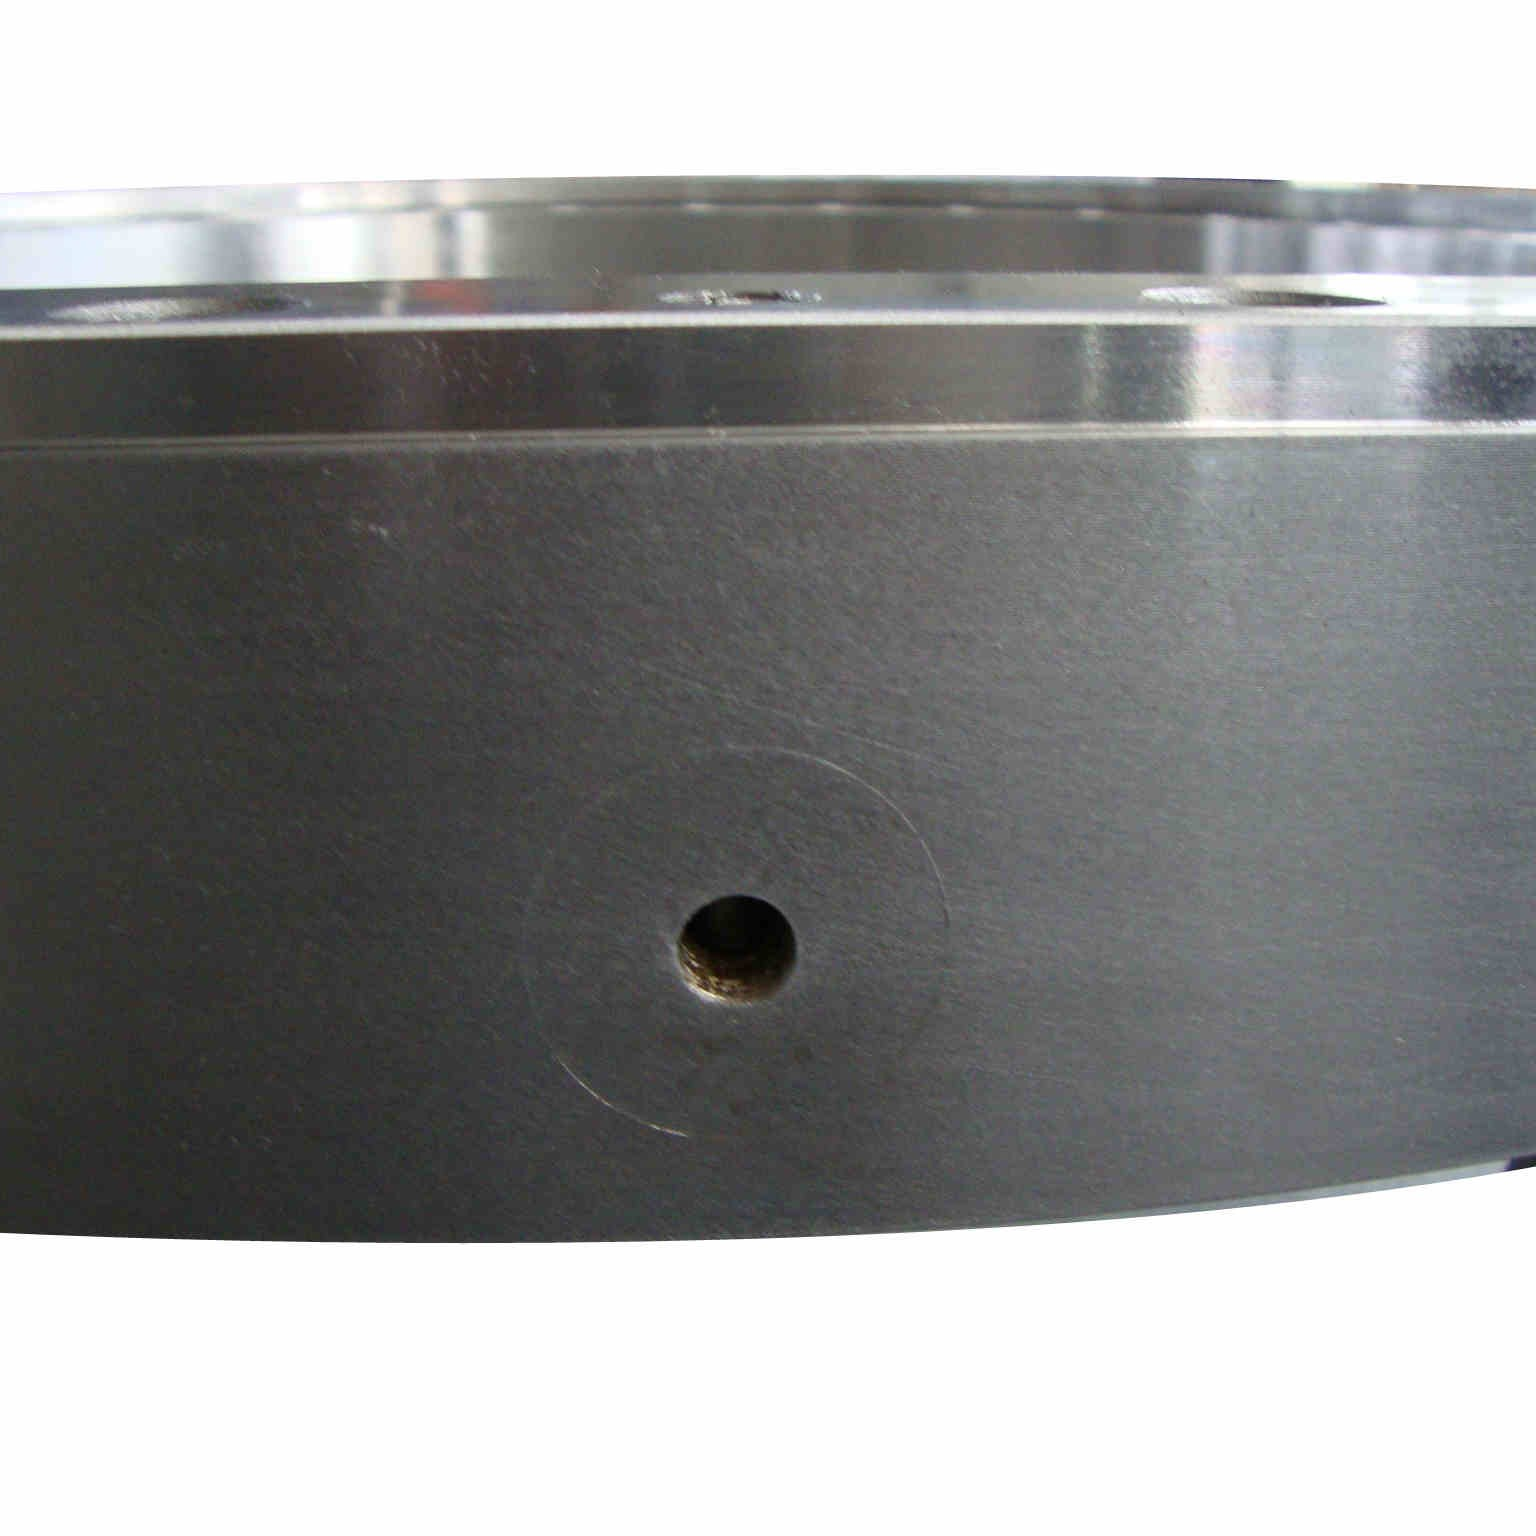 Rotation Bearing For Reclaimer Manufacturers, Rotation Bearing For Reclaimer Factory, Supply Rotation Bearing For Reclaimer